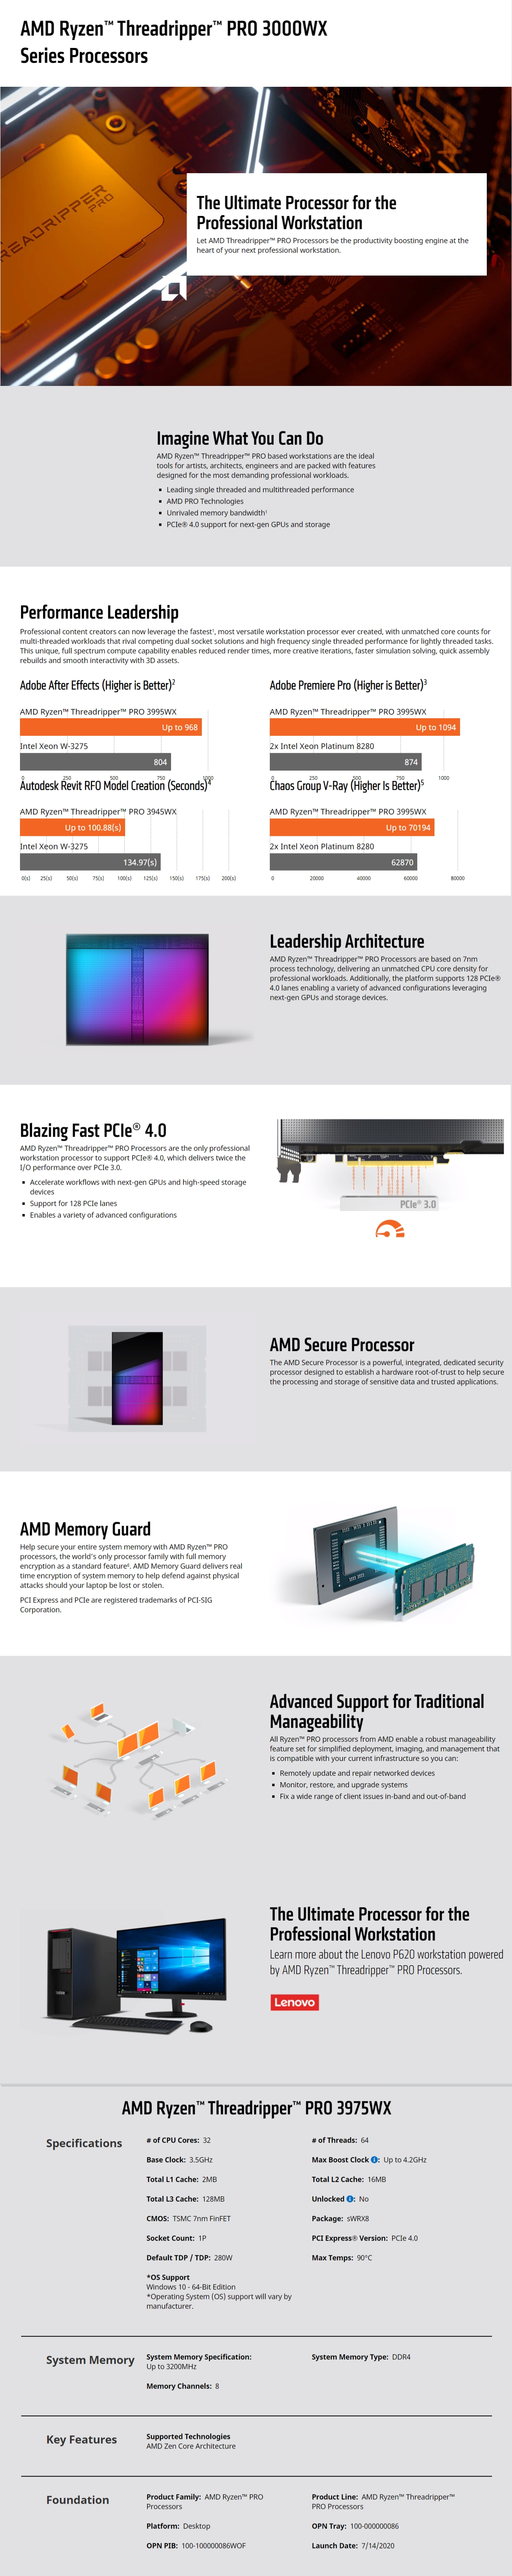 A large marketing image providing additional information about the product AMD Ryzen Threadripper PRO 3975WX 32 Core 64 Thread Up To 4.2Ghz  128MB sWRX8 Processor - No HSF Retail Box - Additional alt info not provided